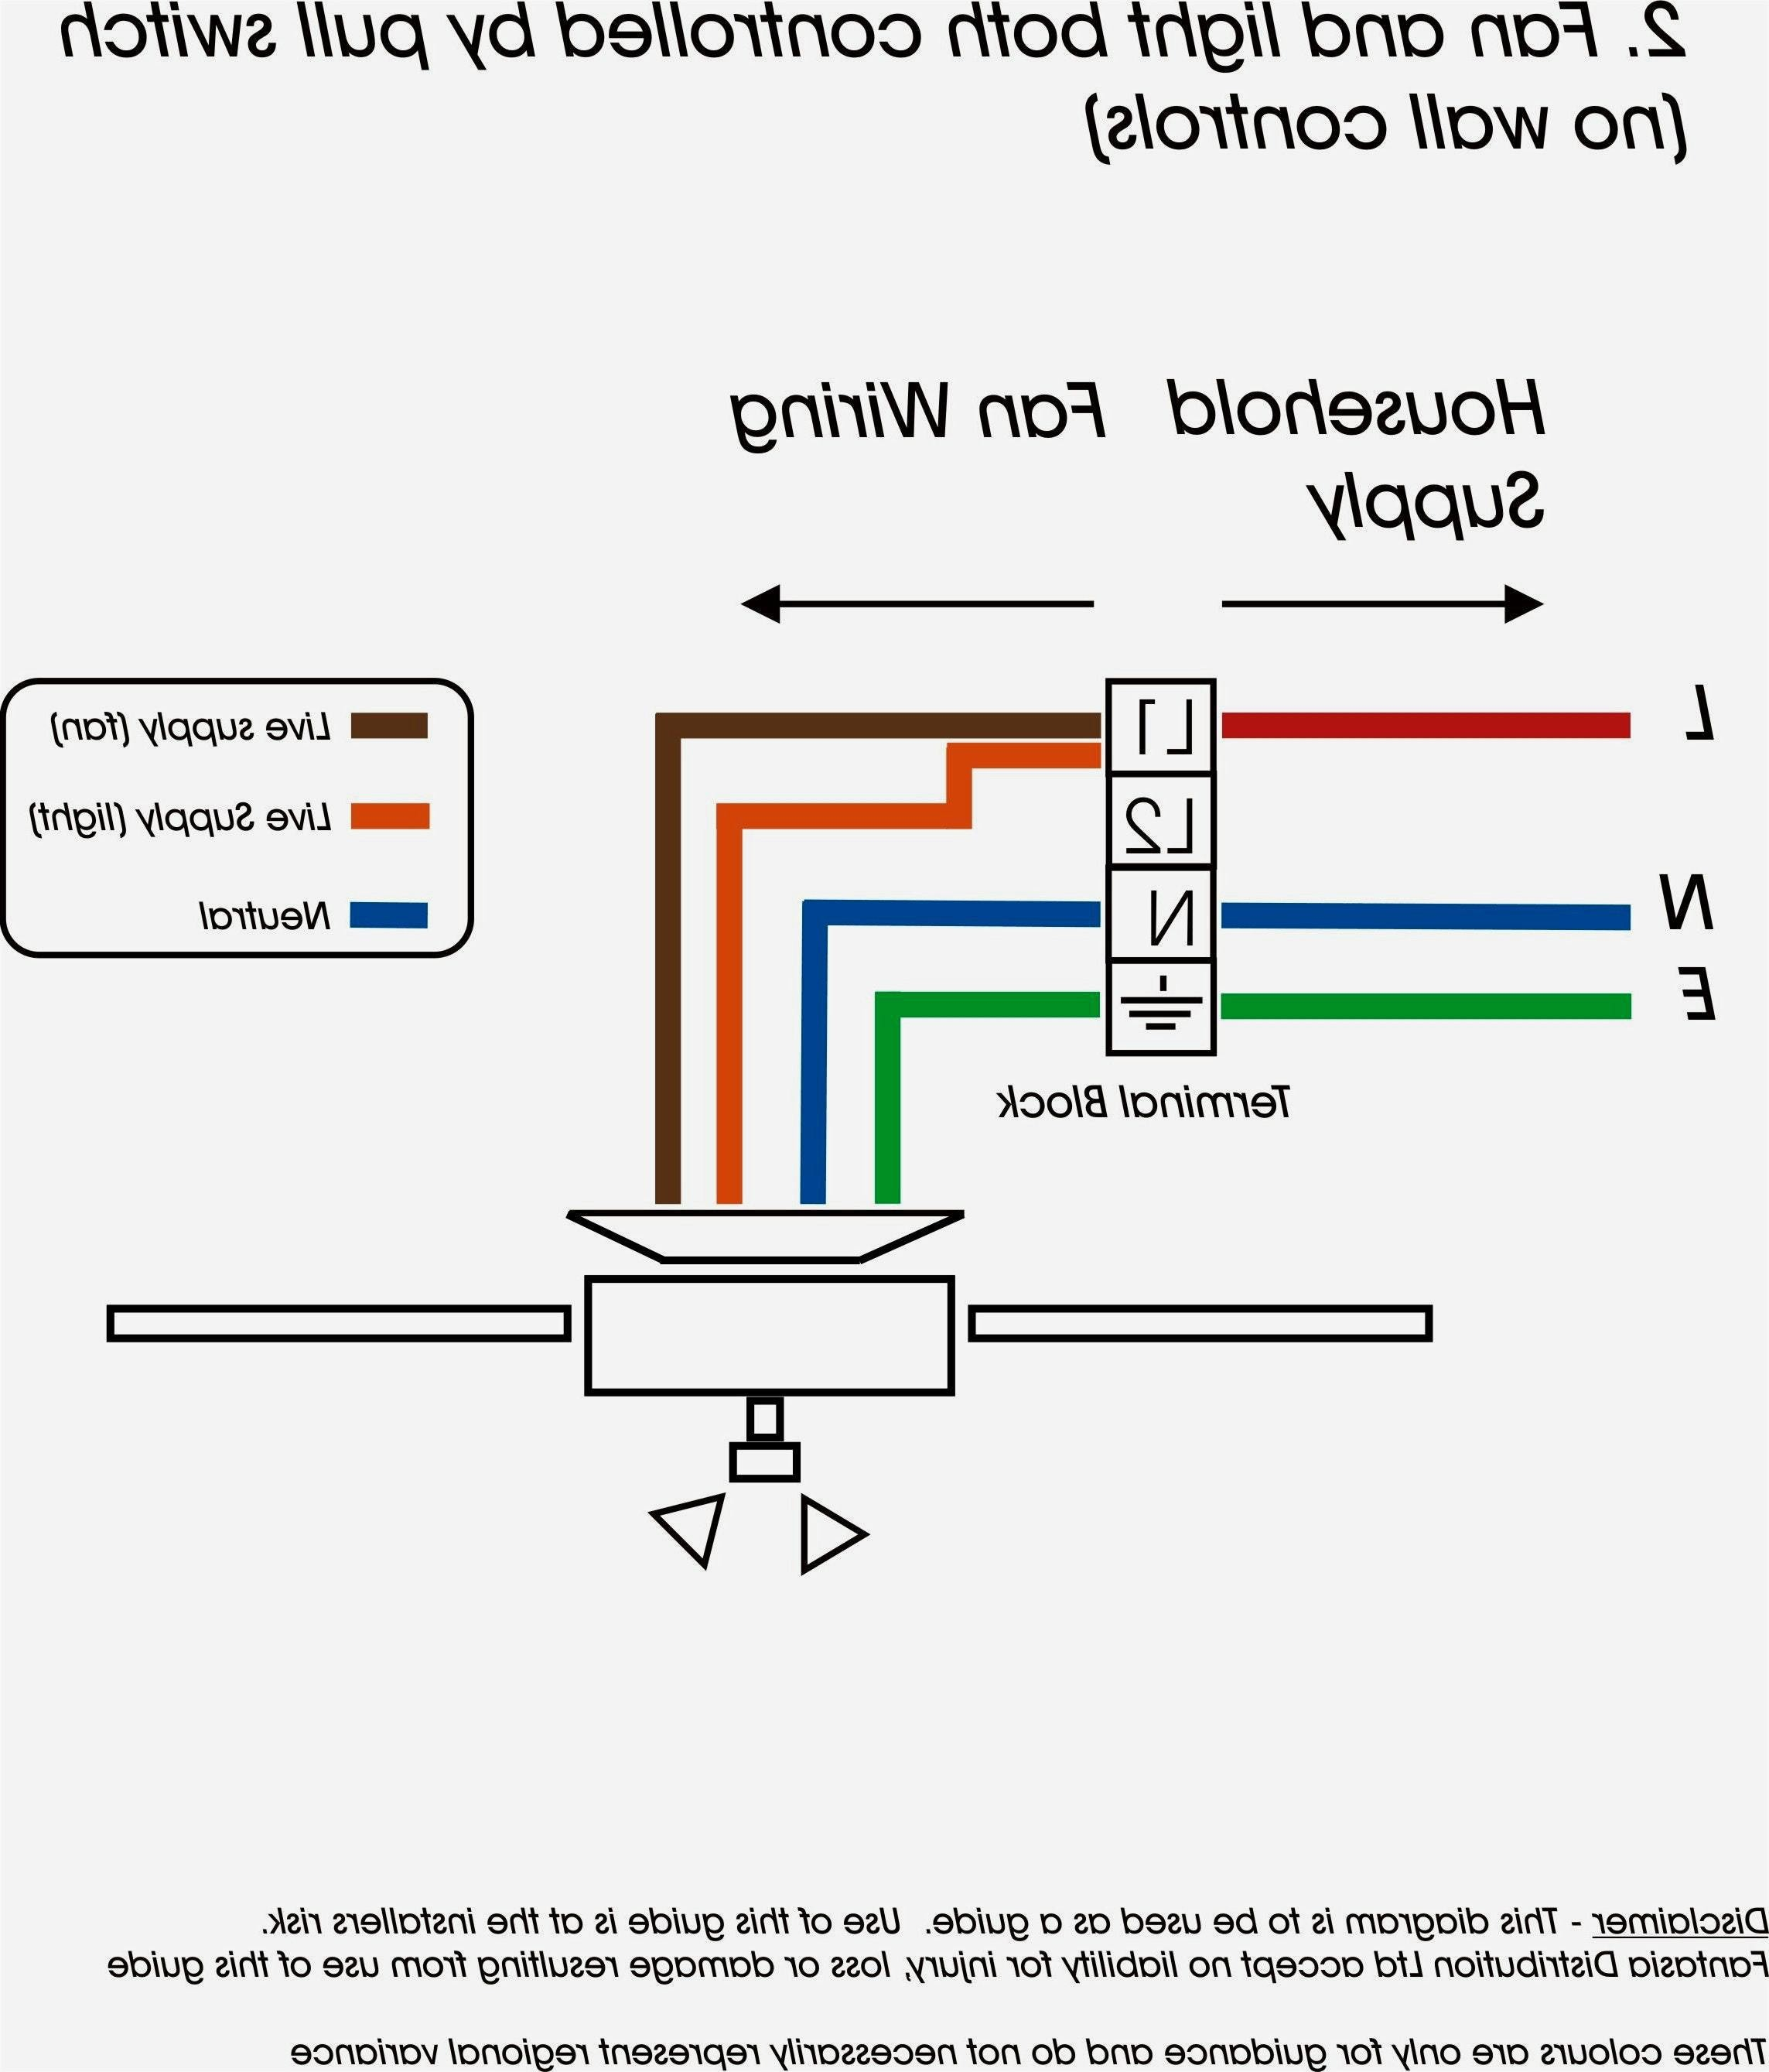 carling technologies rocker switch wiring diagram Collection-Carling Technologies Rocker Switch Wiring Diagram Lovely Unusual How to Wire A Rotary Switch Contemporary Electrical 5-q